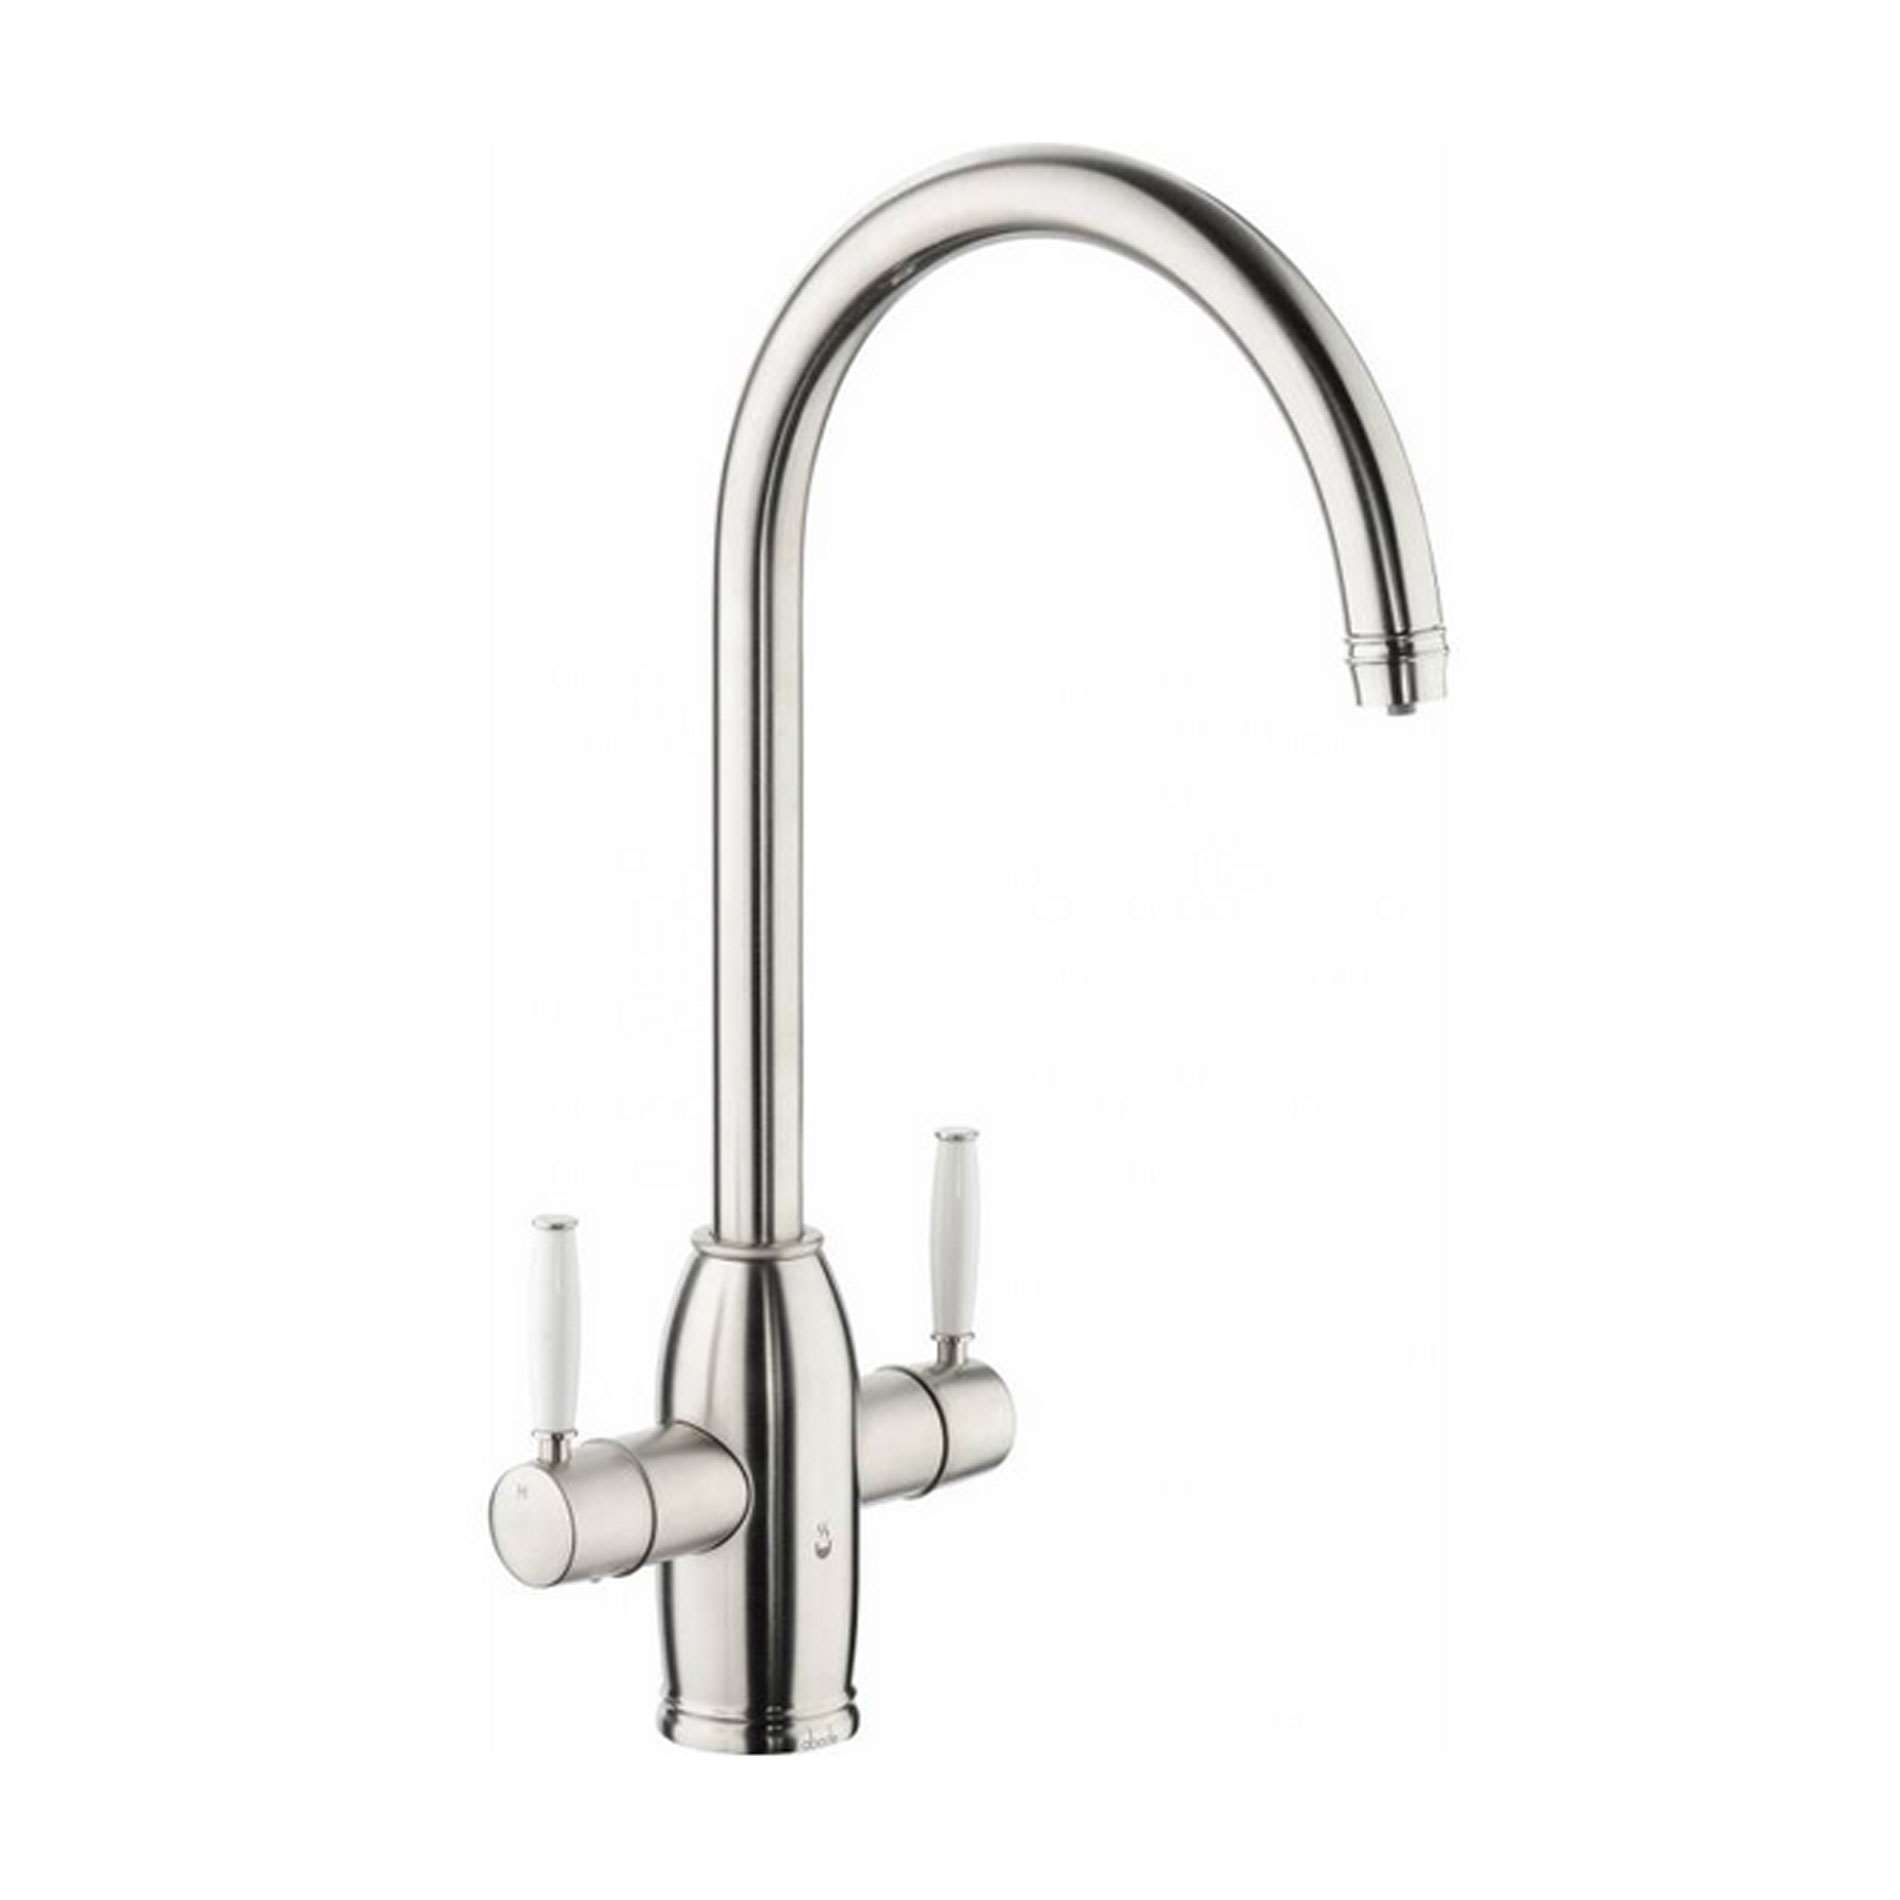 Picture of Pronteau Province PT1006 Brushed Nickel Tap